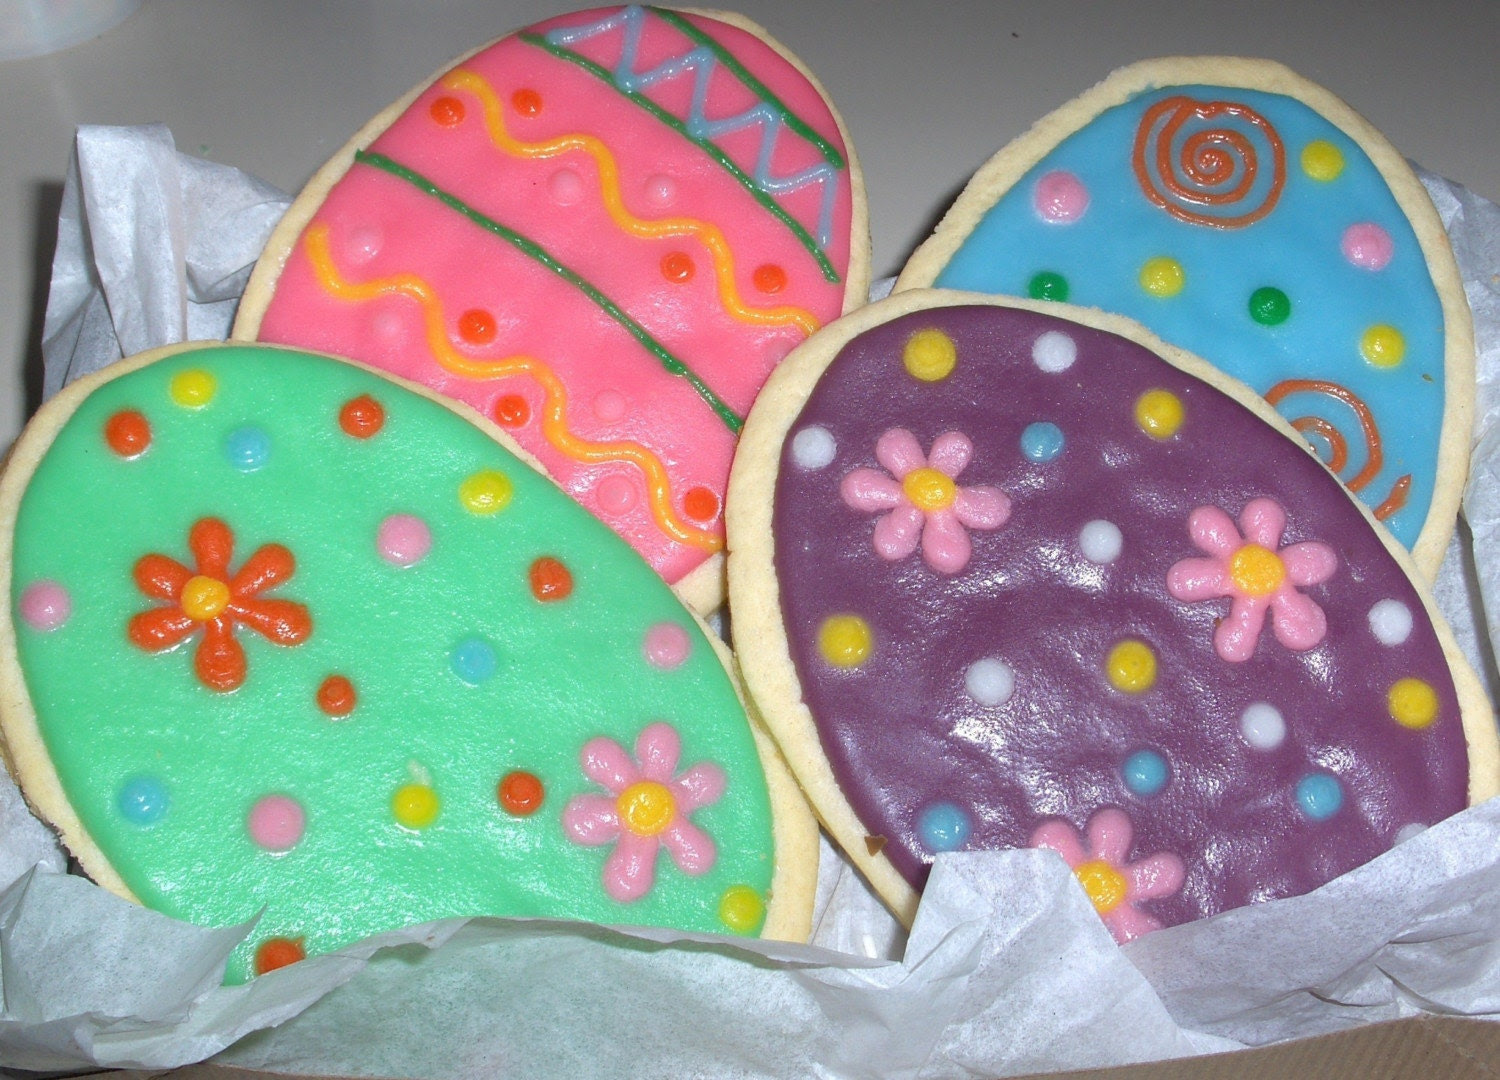 GIANT EGG COOKIE-Decorated sugar cookie with rich Buttercream frosting-CUSTOM EASTER GIFT